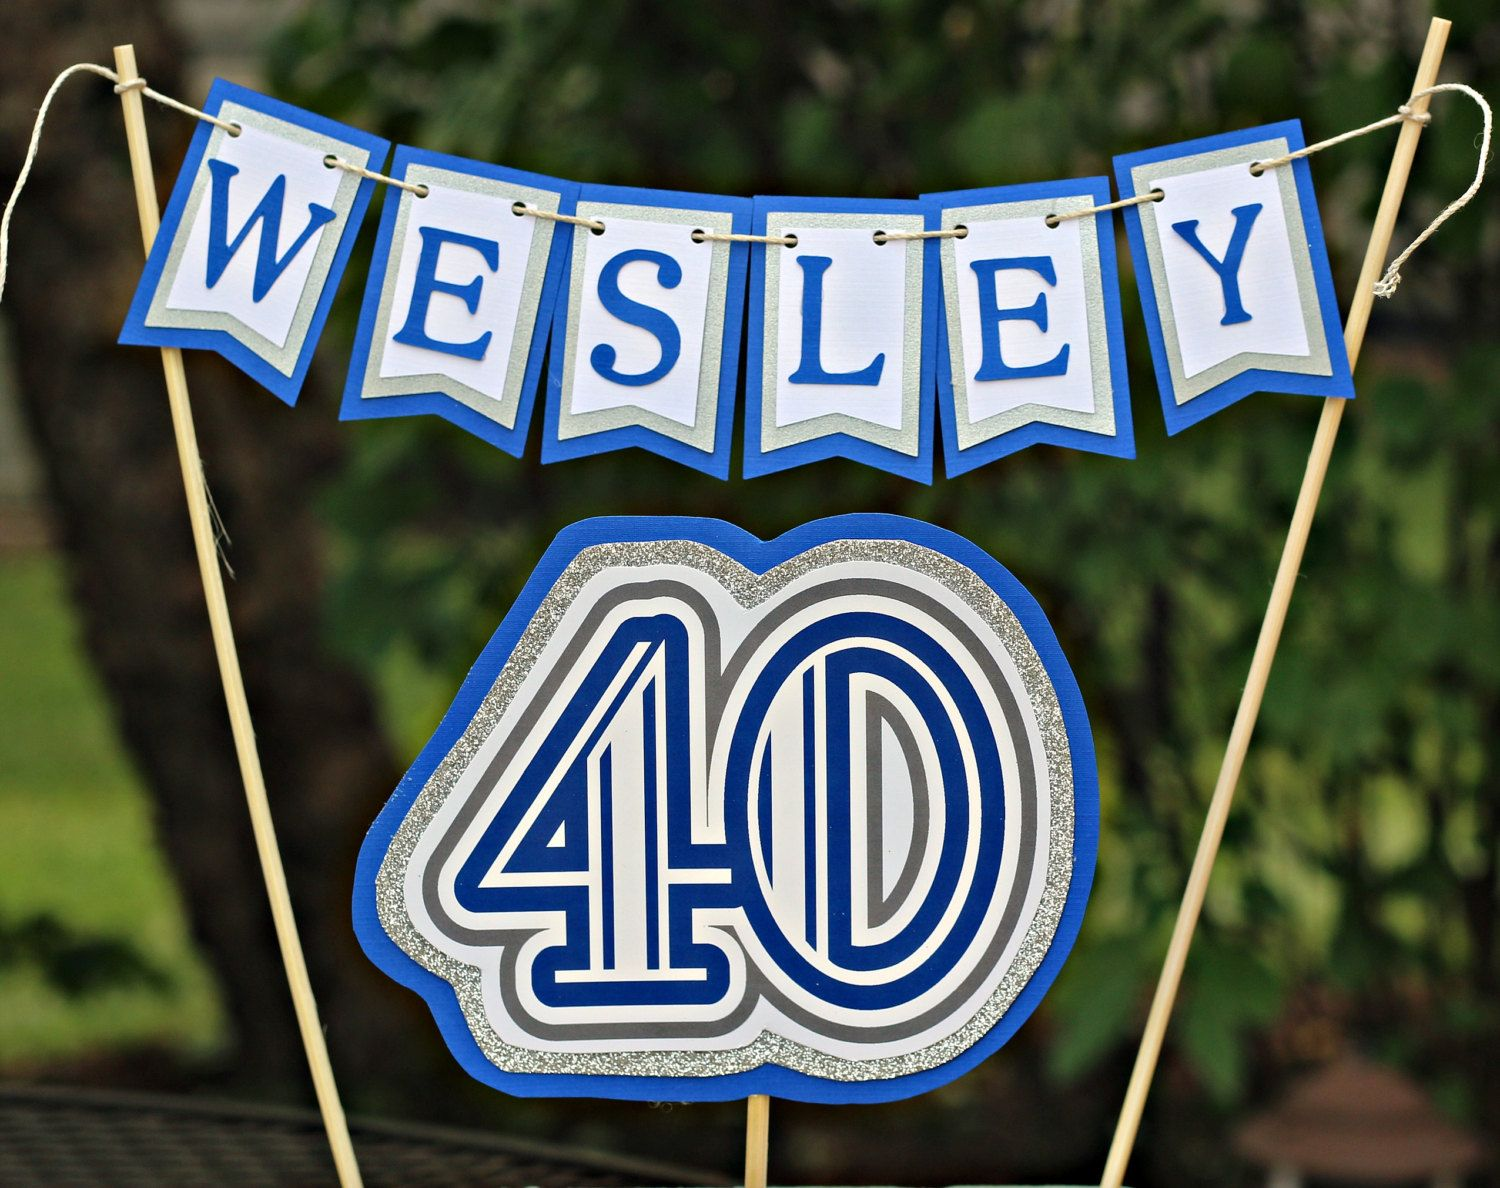 40th Birthday Birthday Cake Topper Royal Blue Silver party